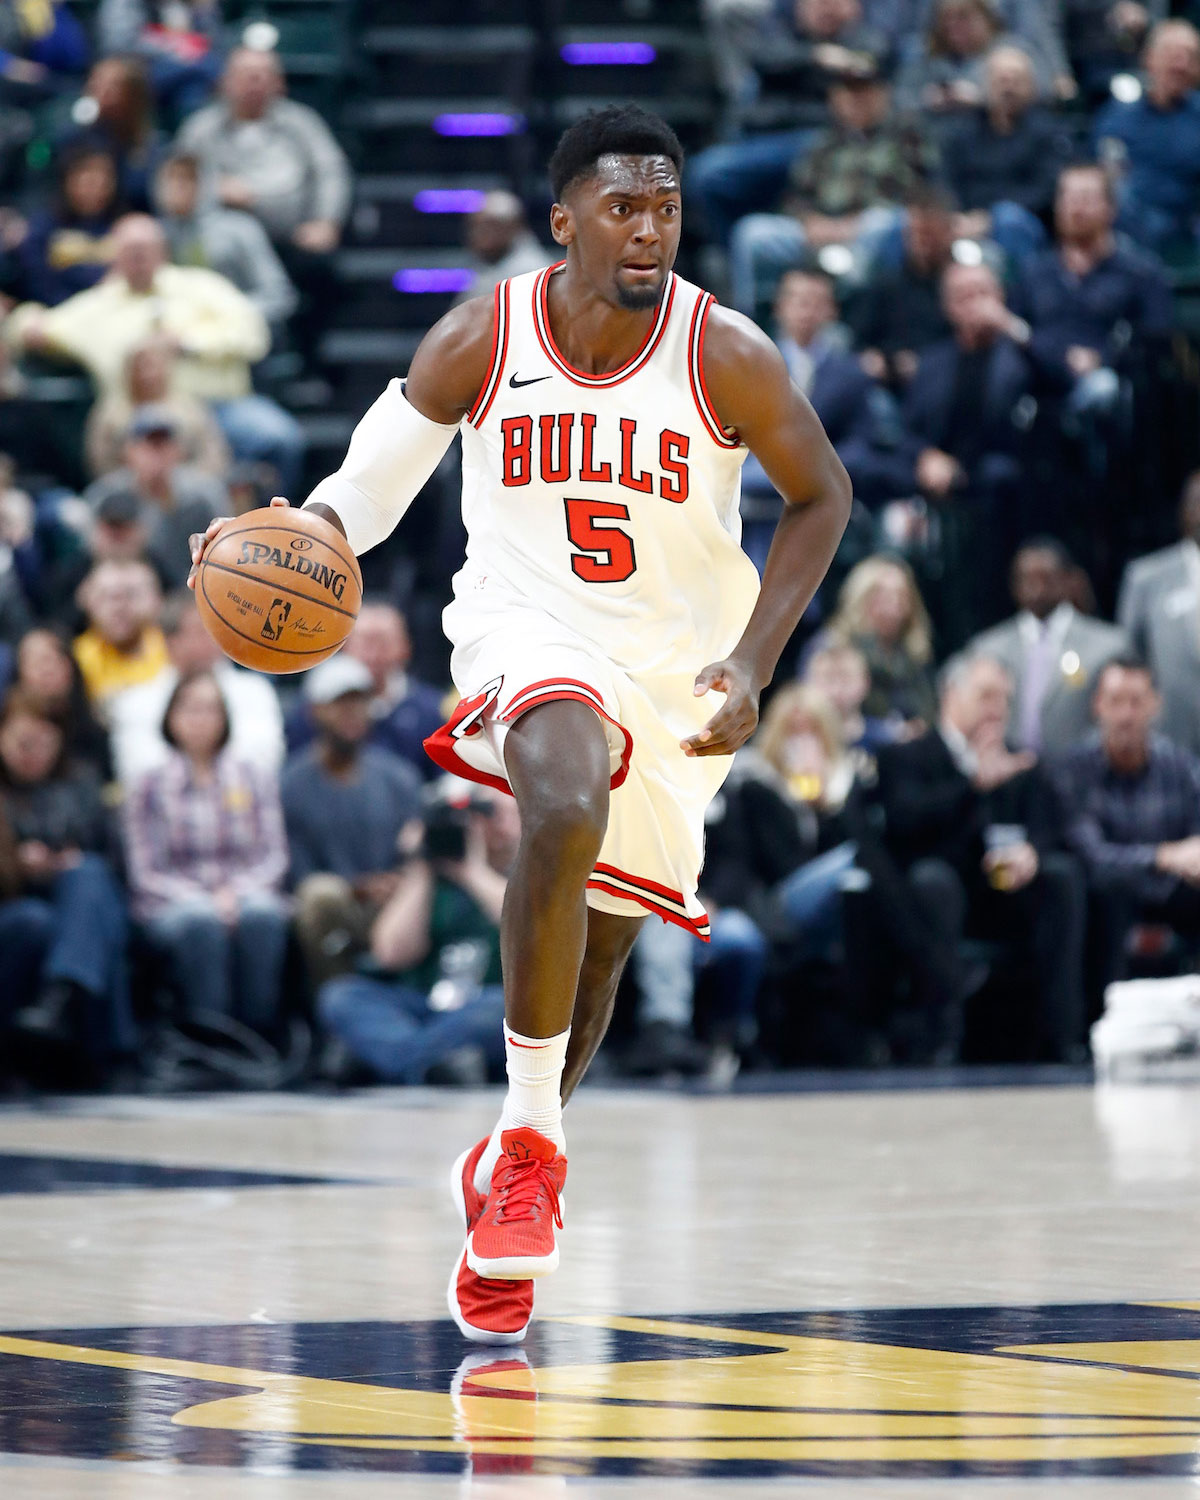 Bobby Portis dribbles the ball.